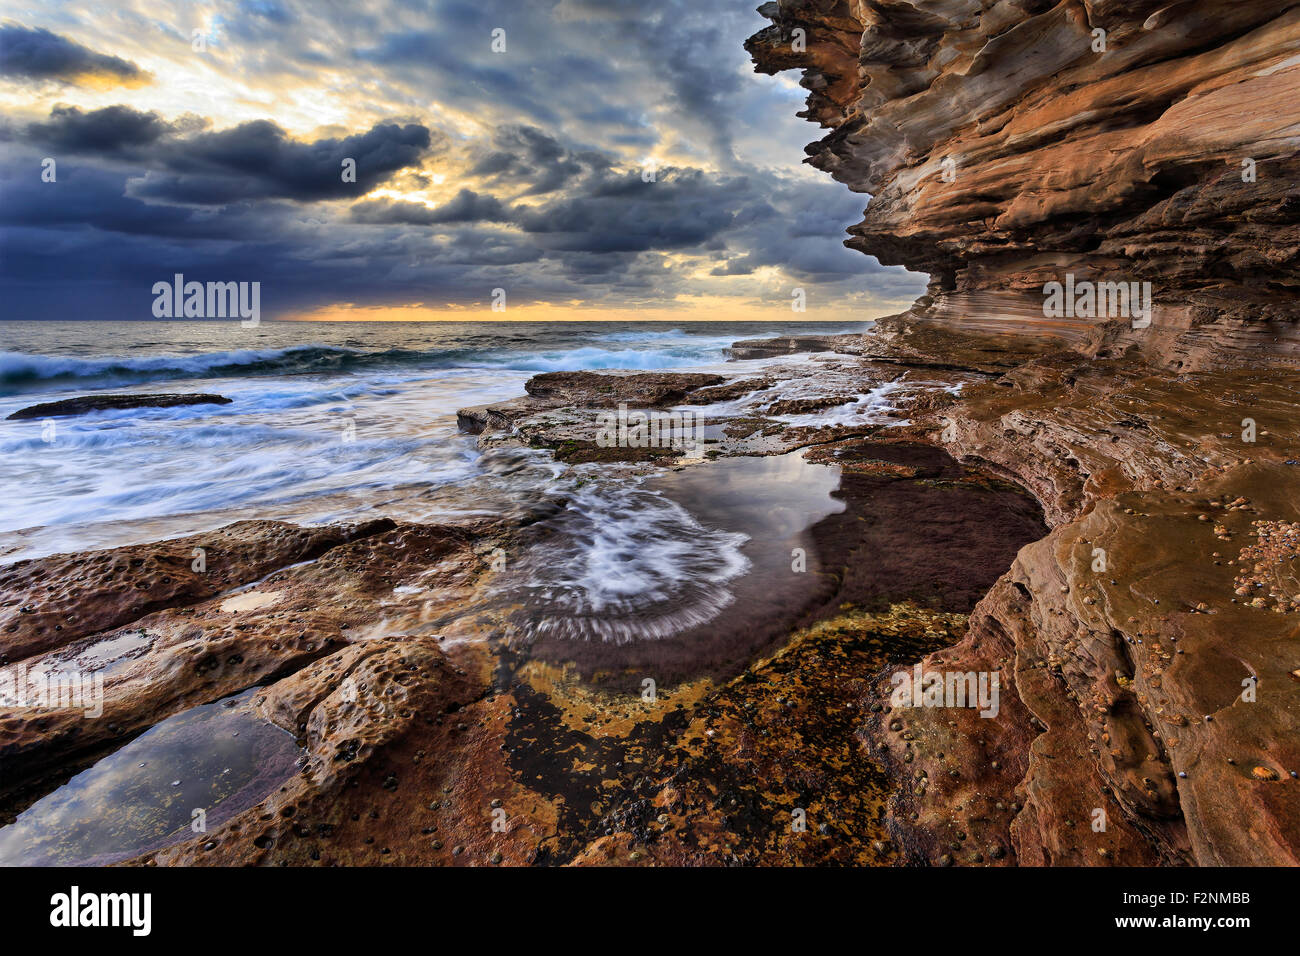 natural sandstone rocks forming high rising landscape at sea edge of coastal line in Sydney, Australia - Stock Image